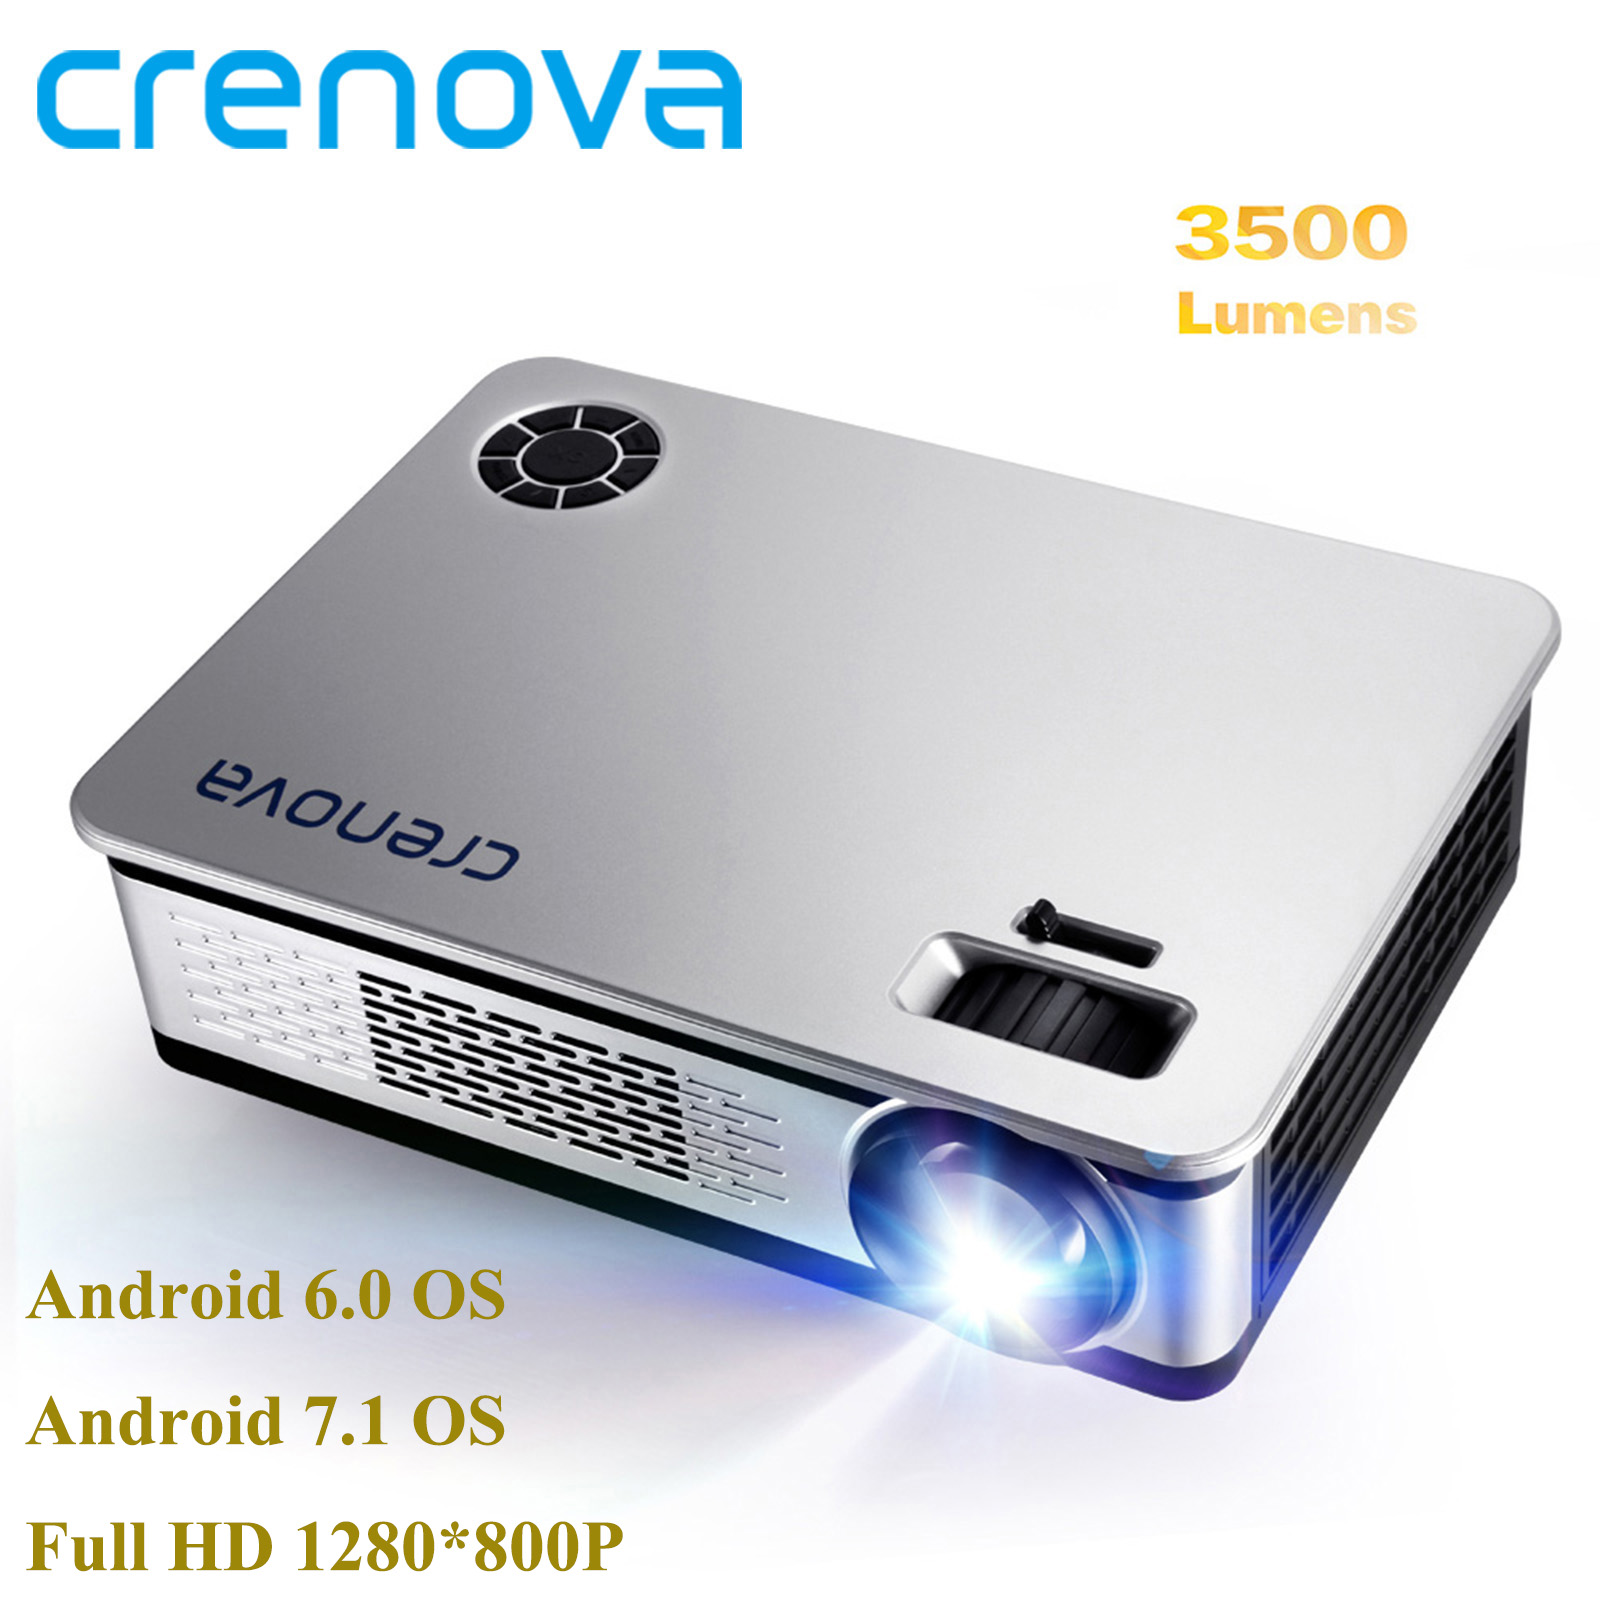 CRENOVA 4500 Lumens Video Projector For Full HD 1920*1080 Android Projector With WIFI Bluetooth Android 6.0 7.1 OS LED Beamer-in LCD Projectors from Consumer Electronics